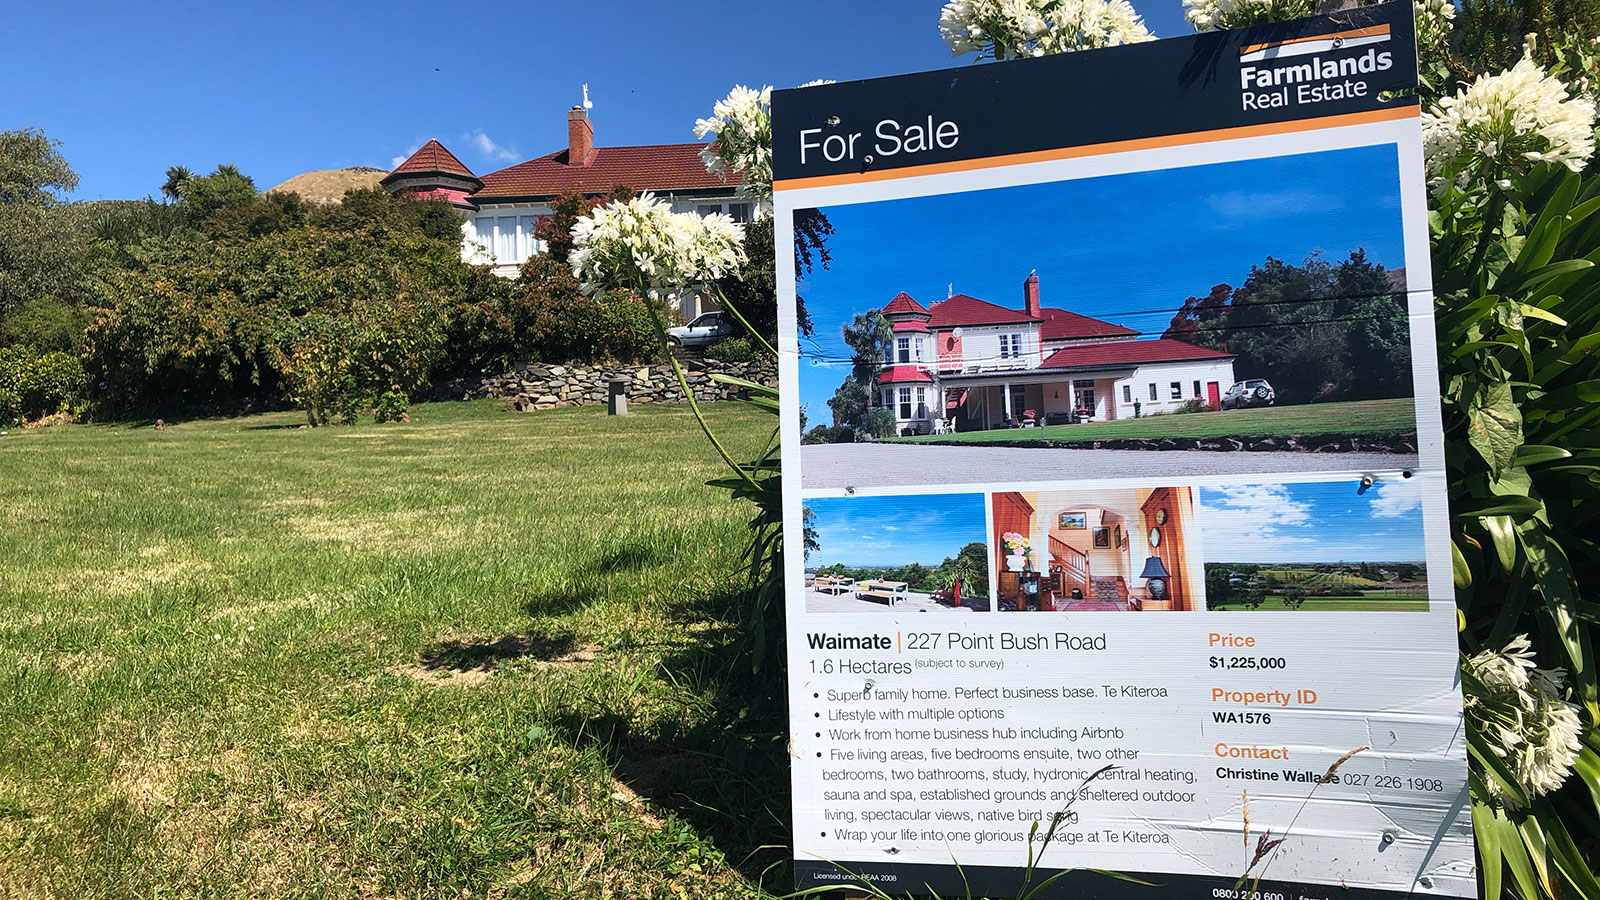 Beautiful historic home Te Kiteroa is on the market.